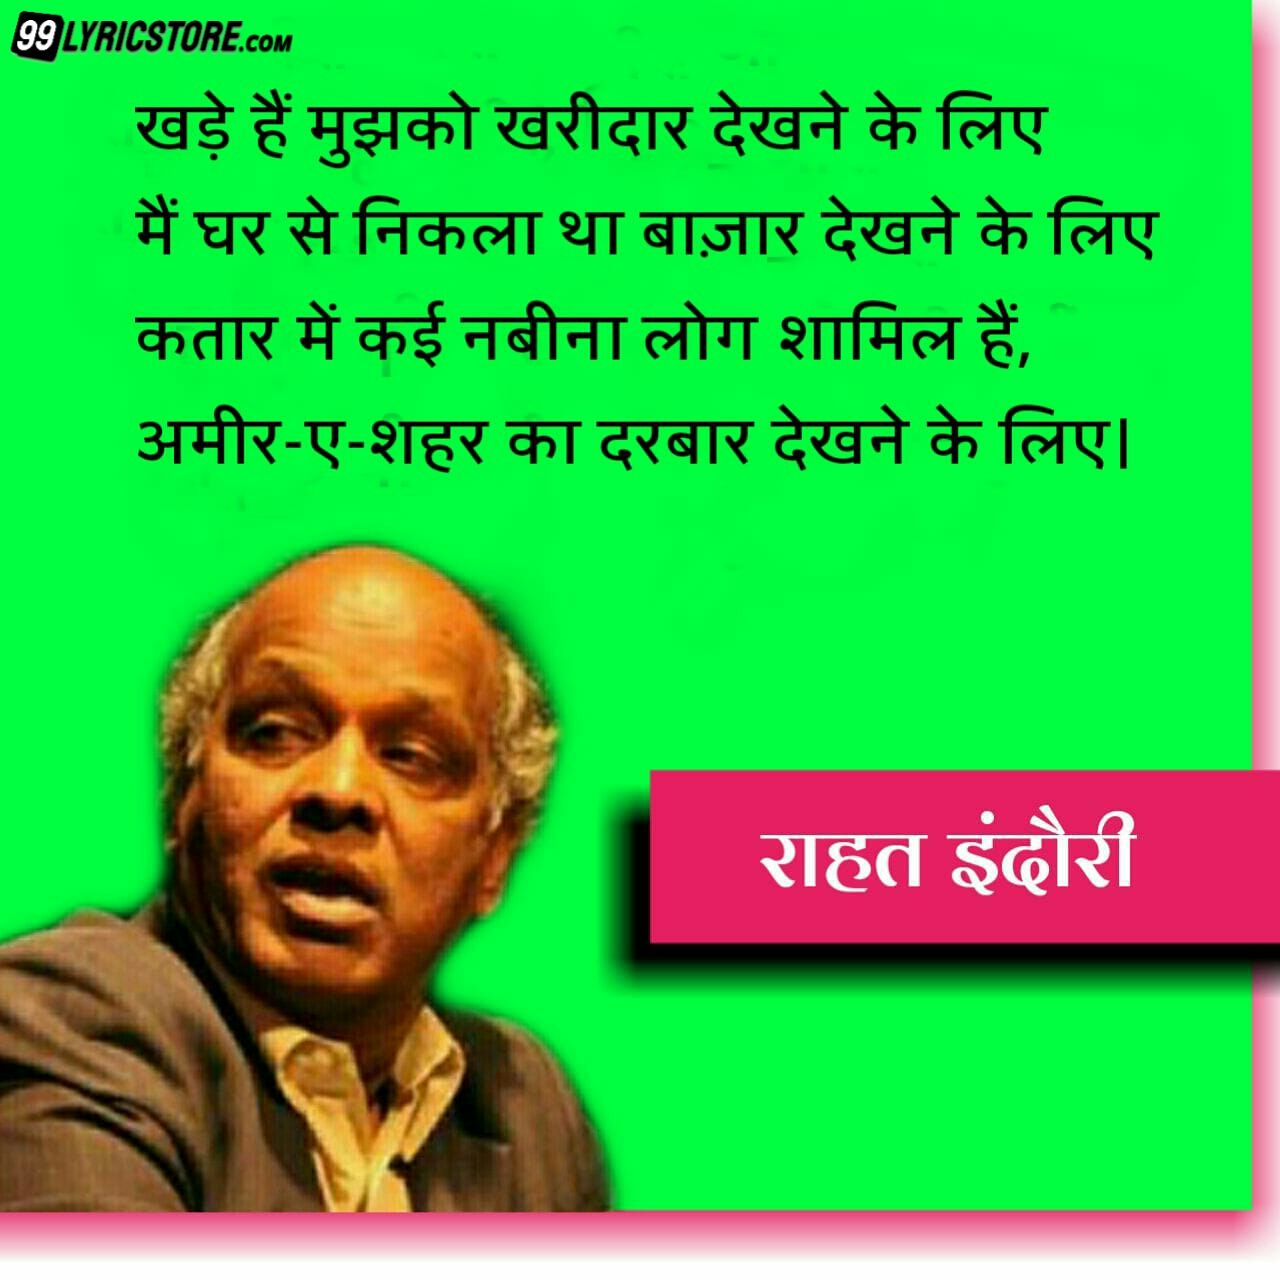 'Khade Hain Mujhko Kharidaar Dekhne Ke Liye' has written and performed by Rahat Indori. This poetry is best Ghazal and Shayari of Rahat Indori.